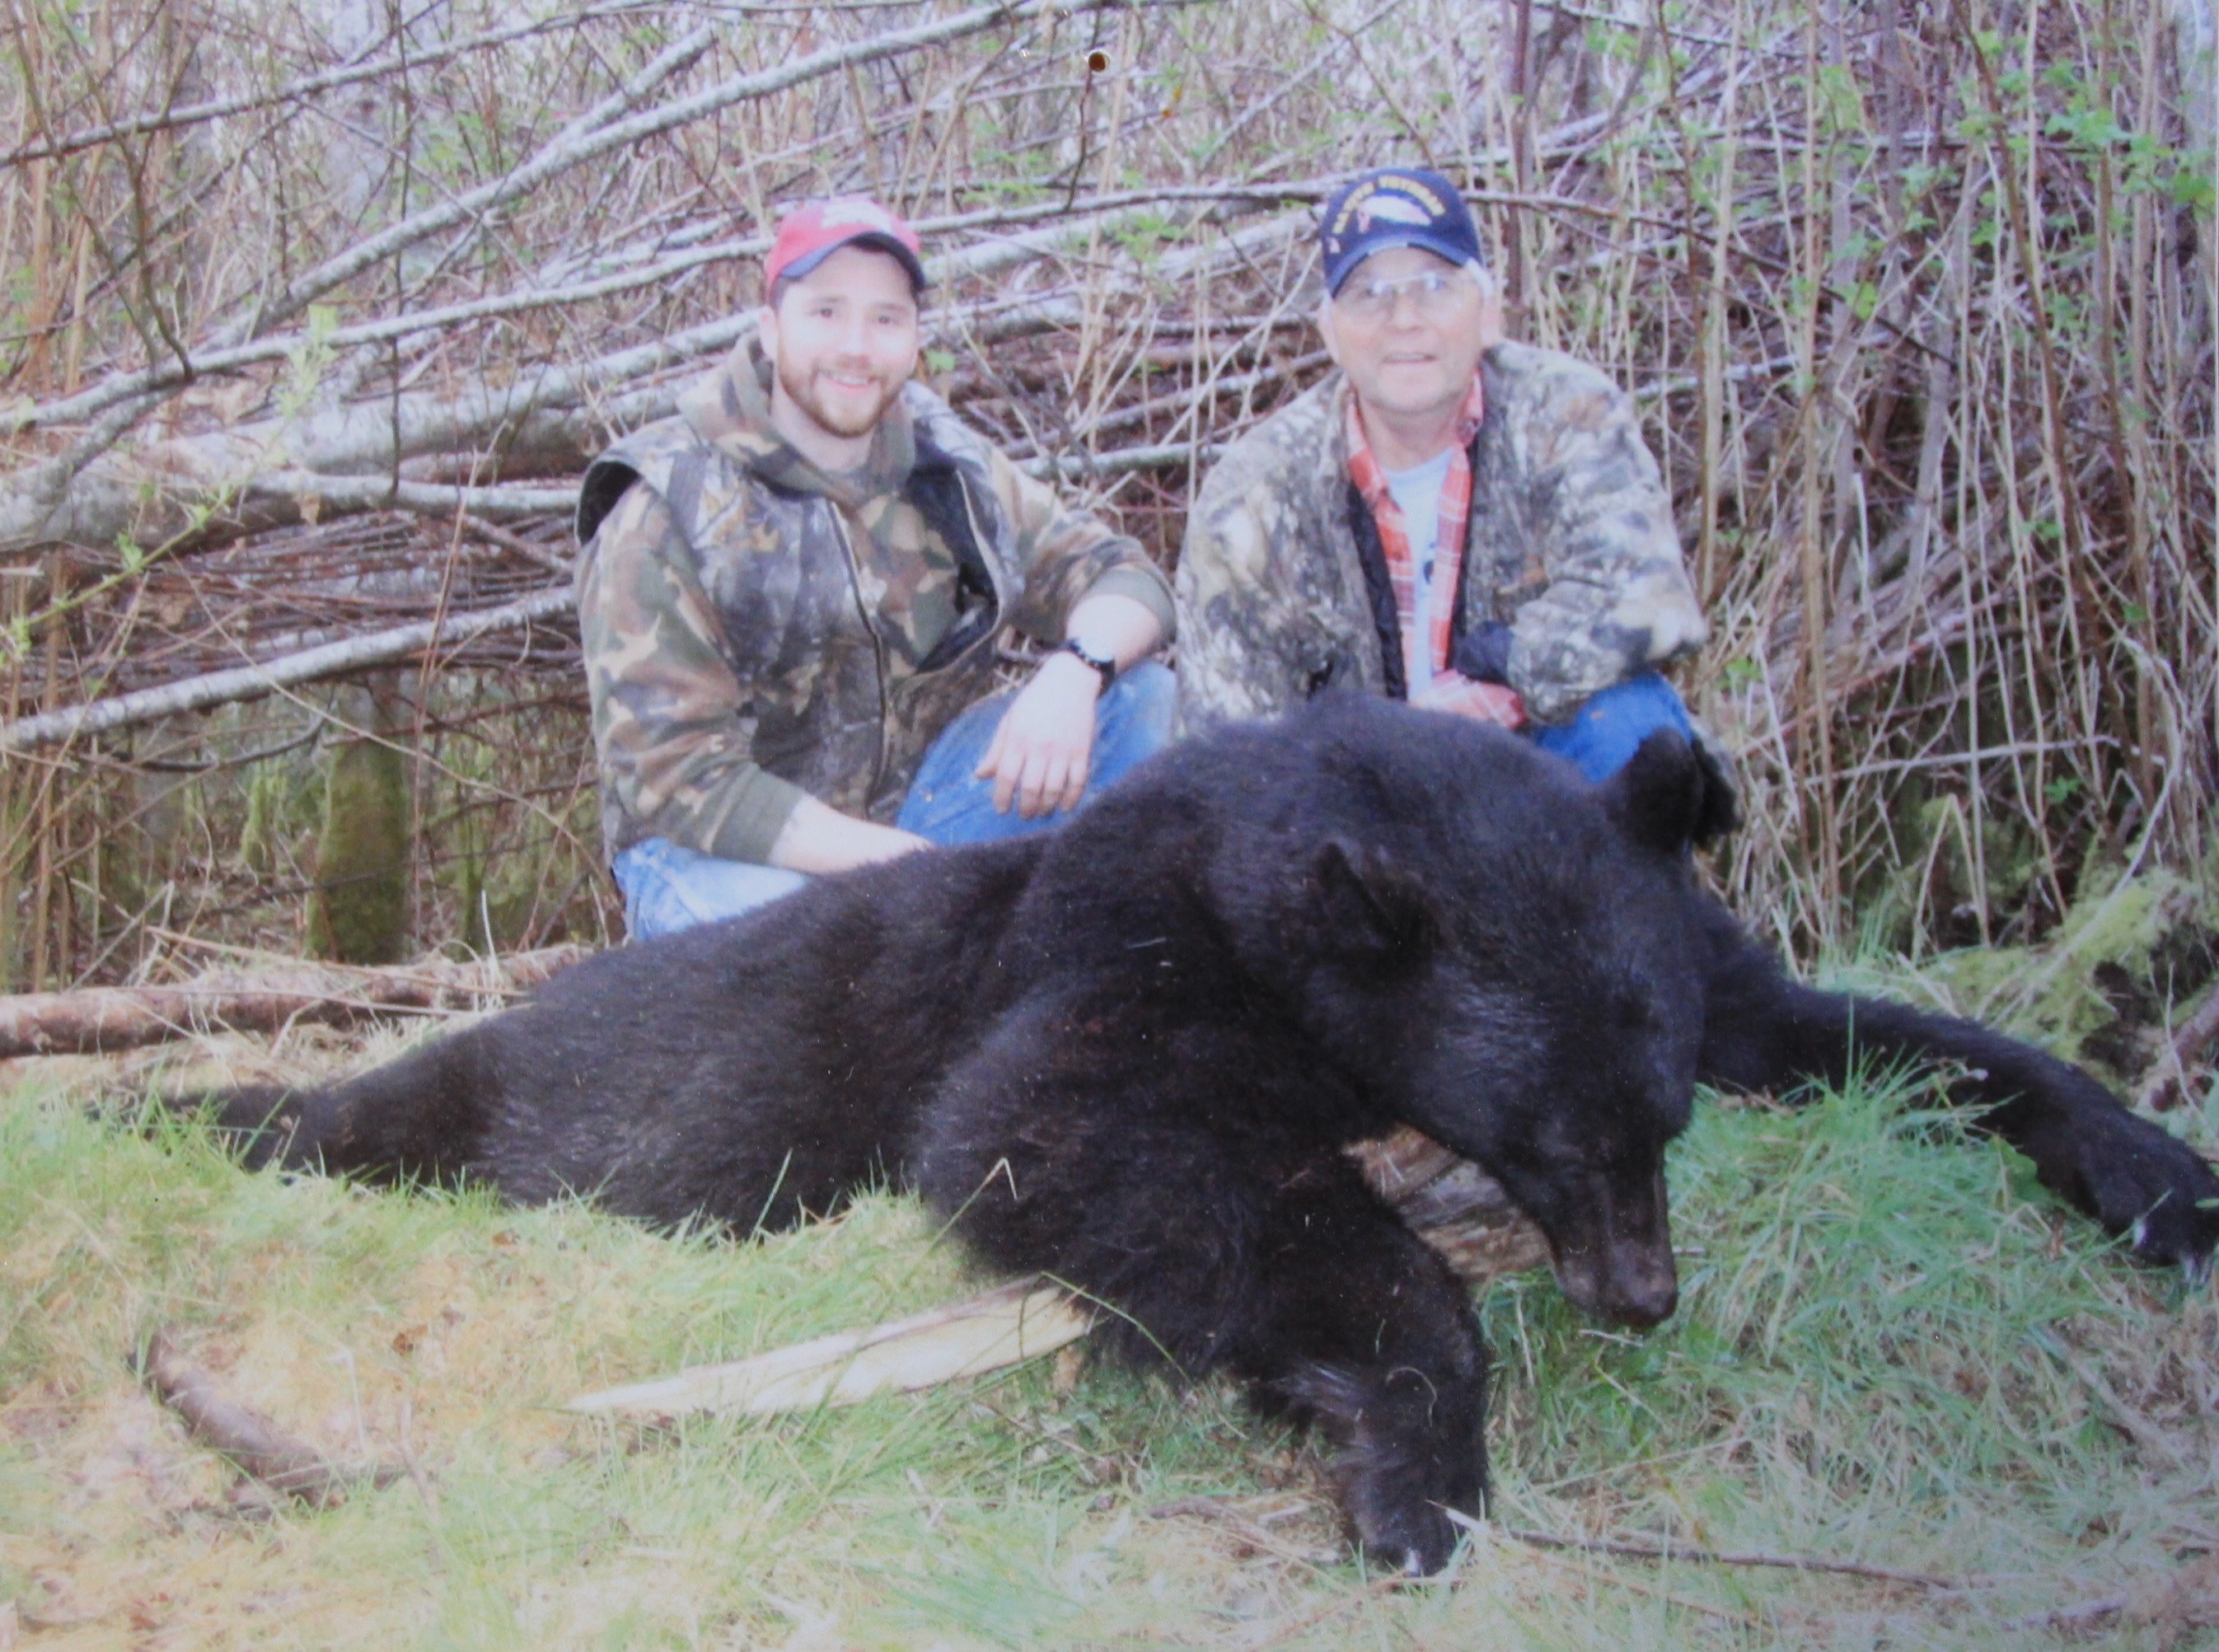 Black bear hunting video, nickelodeon channel porn fakes